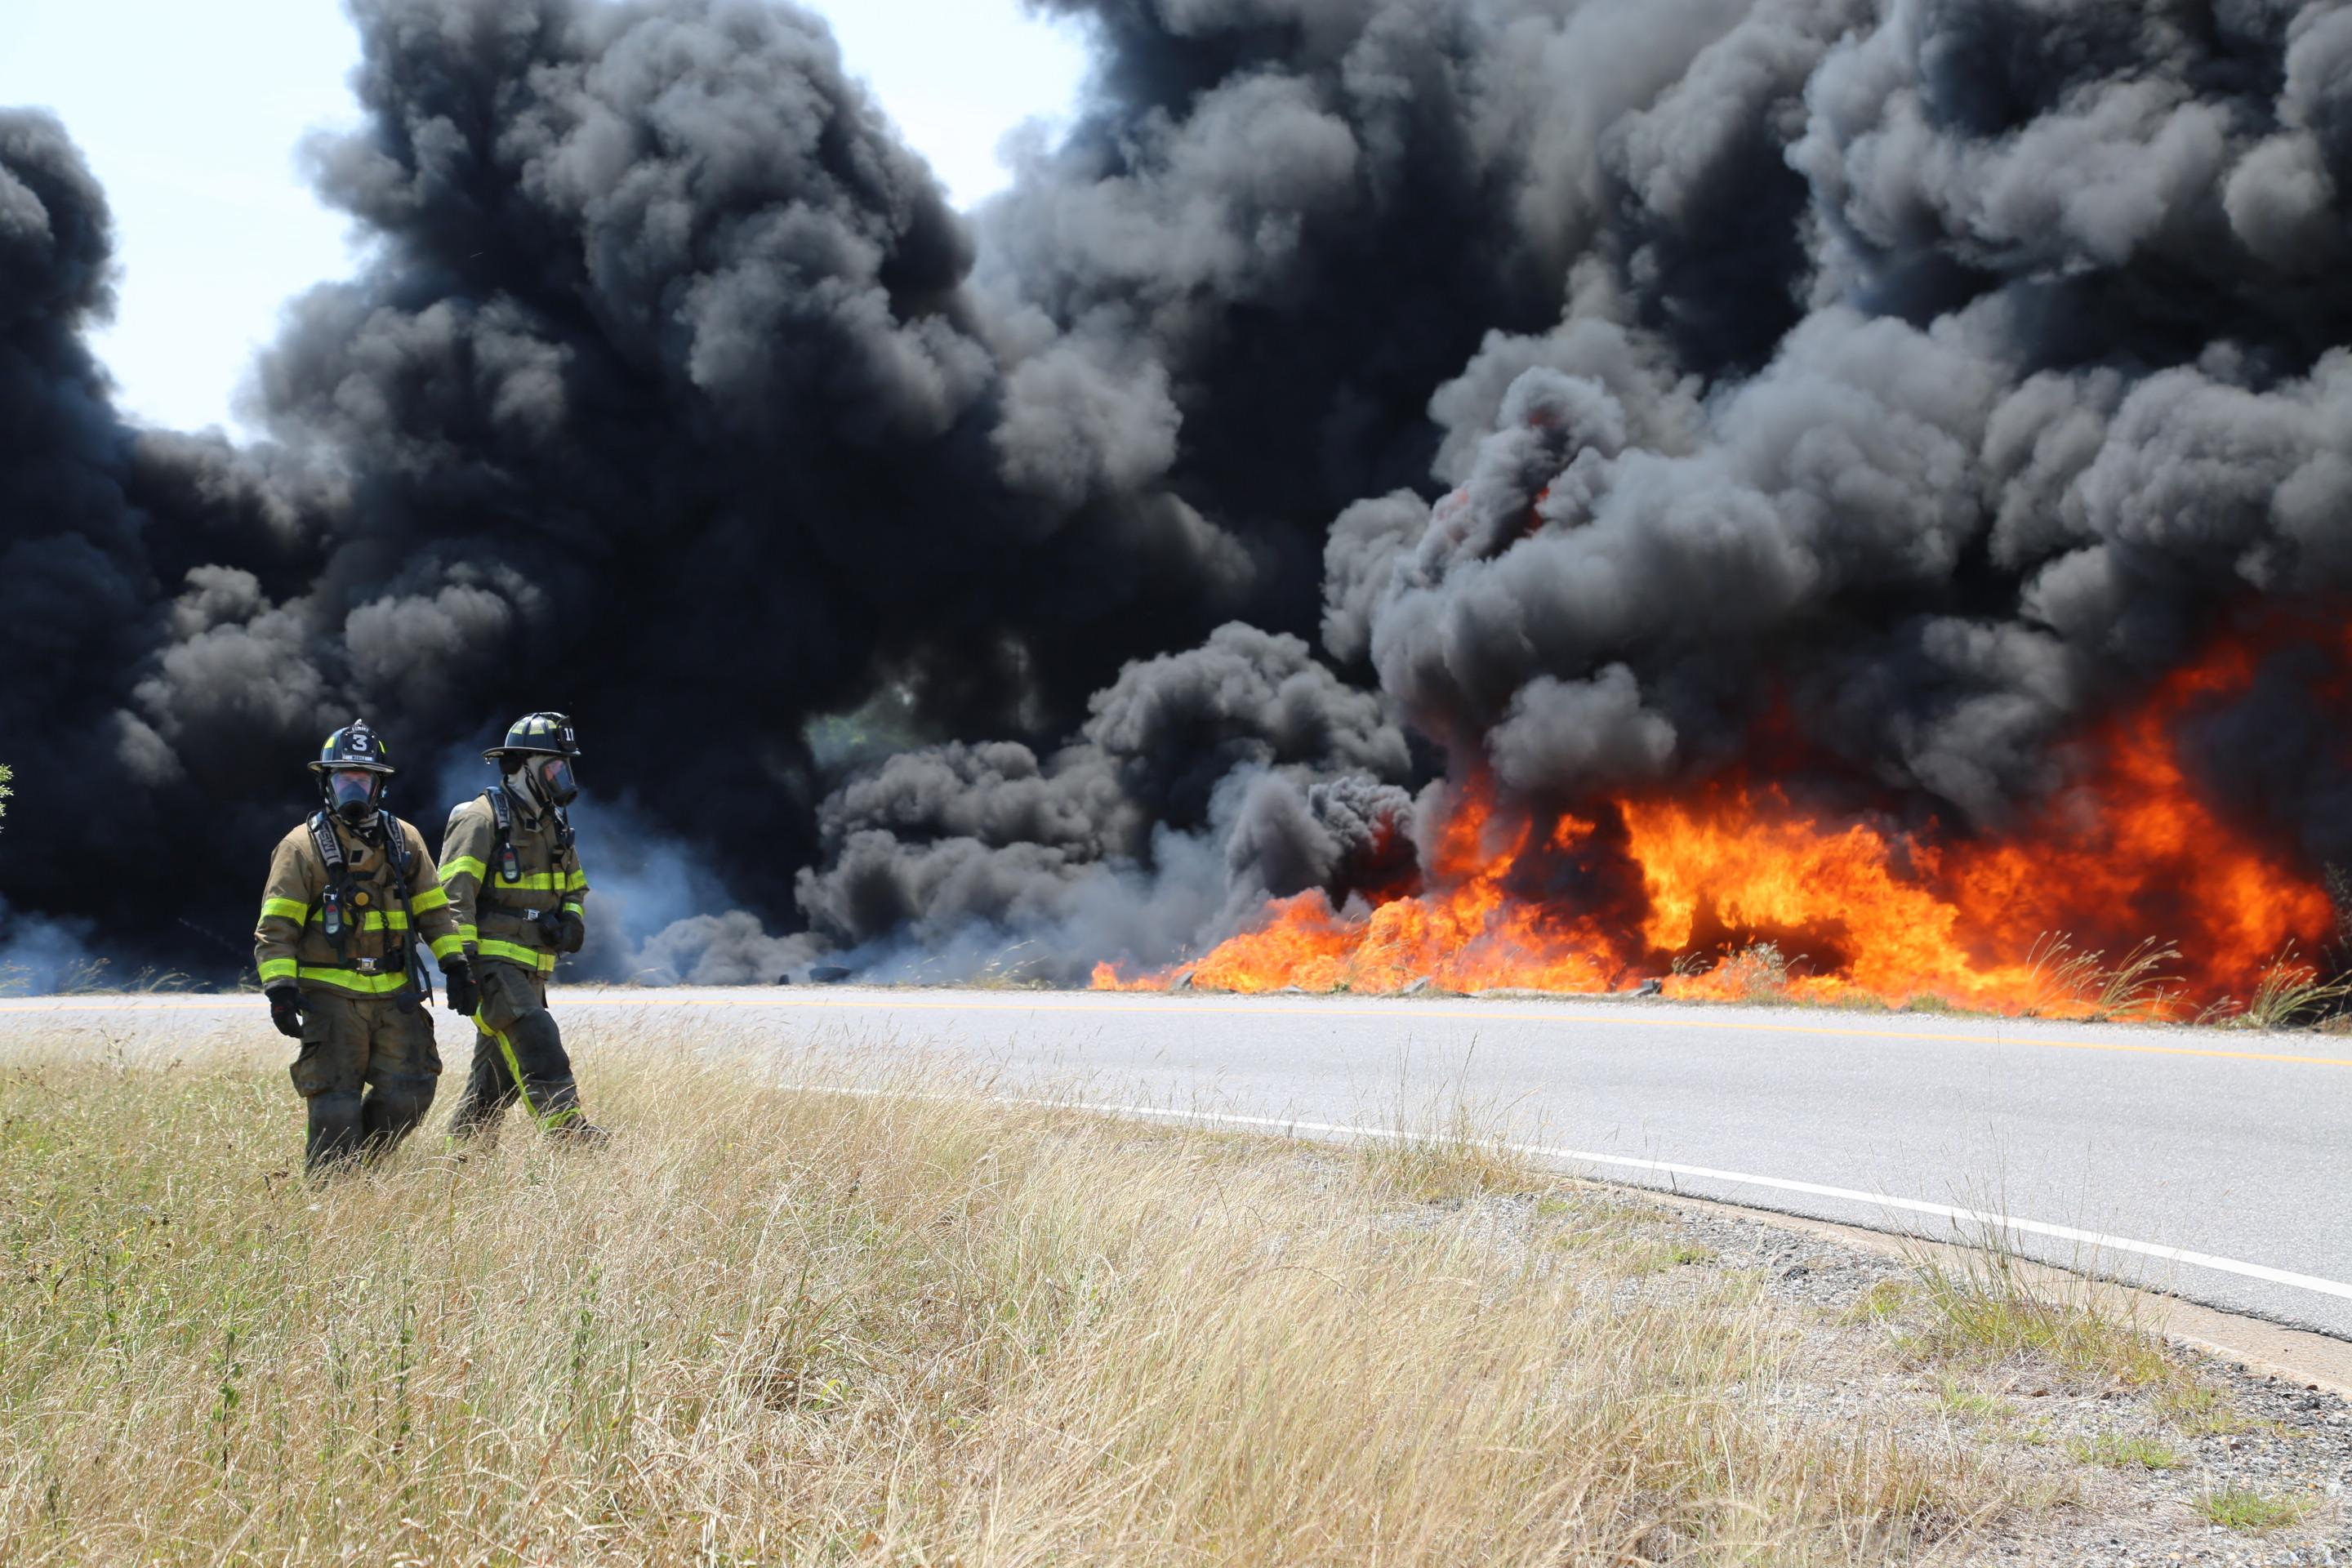 (image: Mobile Fire-Rescue) Overturned tanker truck causes giant fire I-10 at Virginia St.